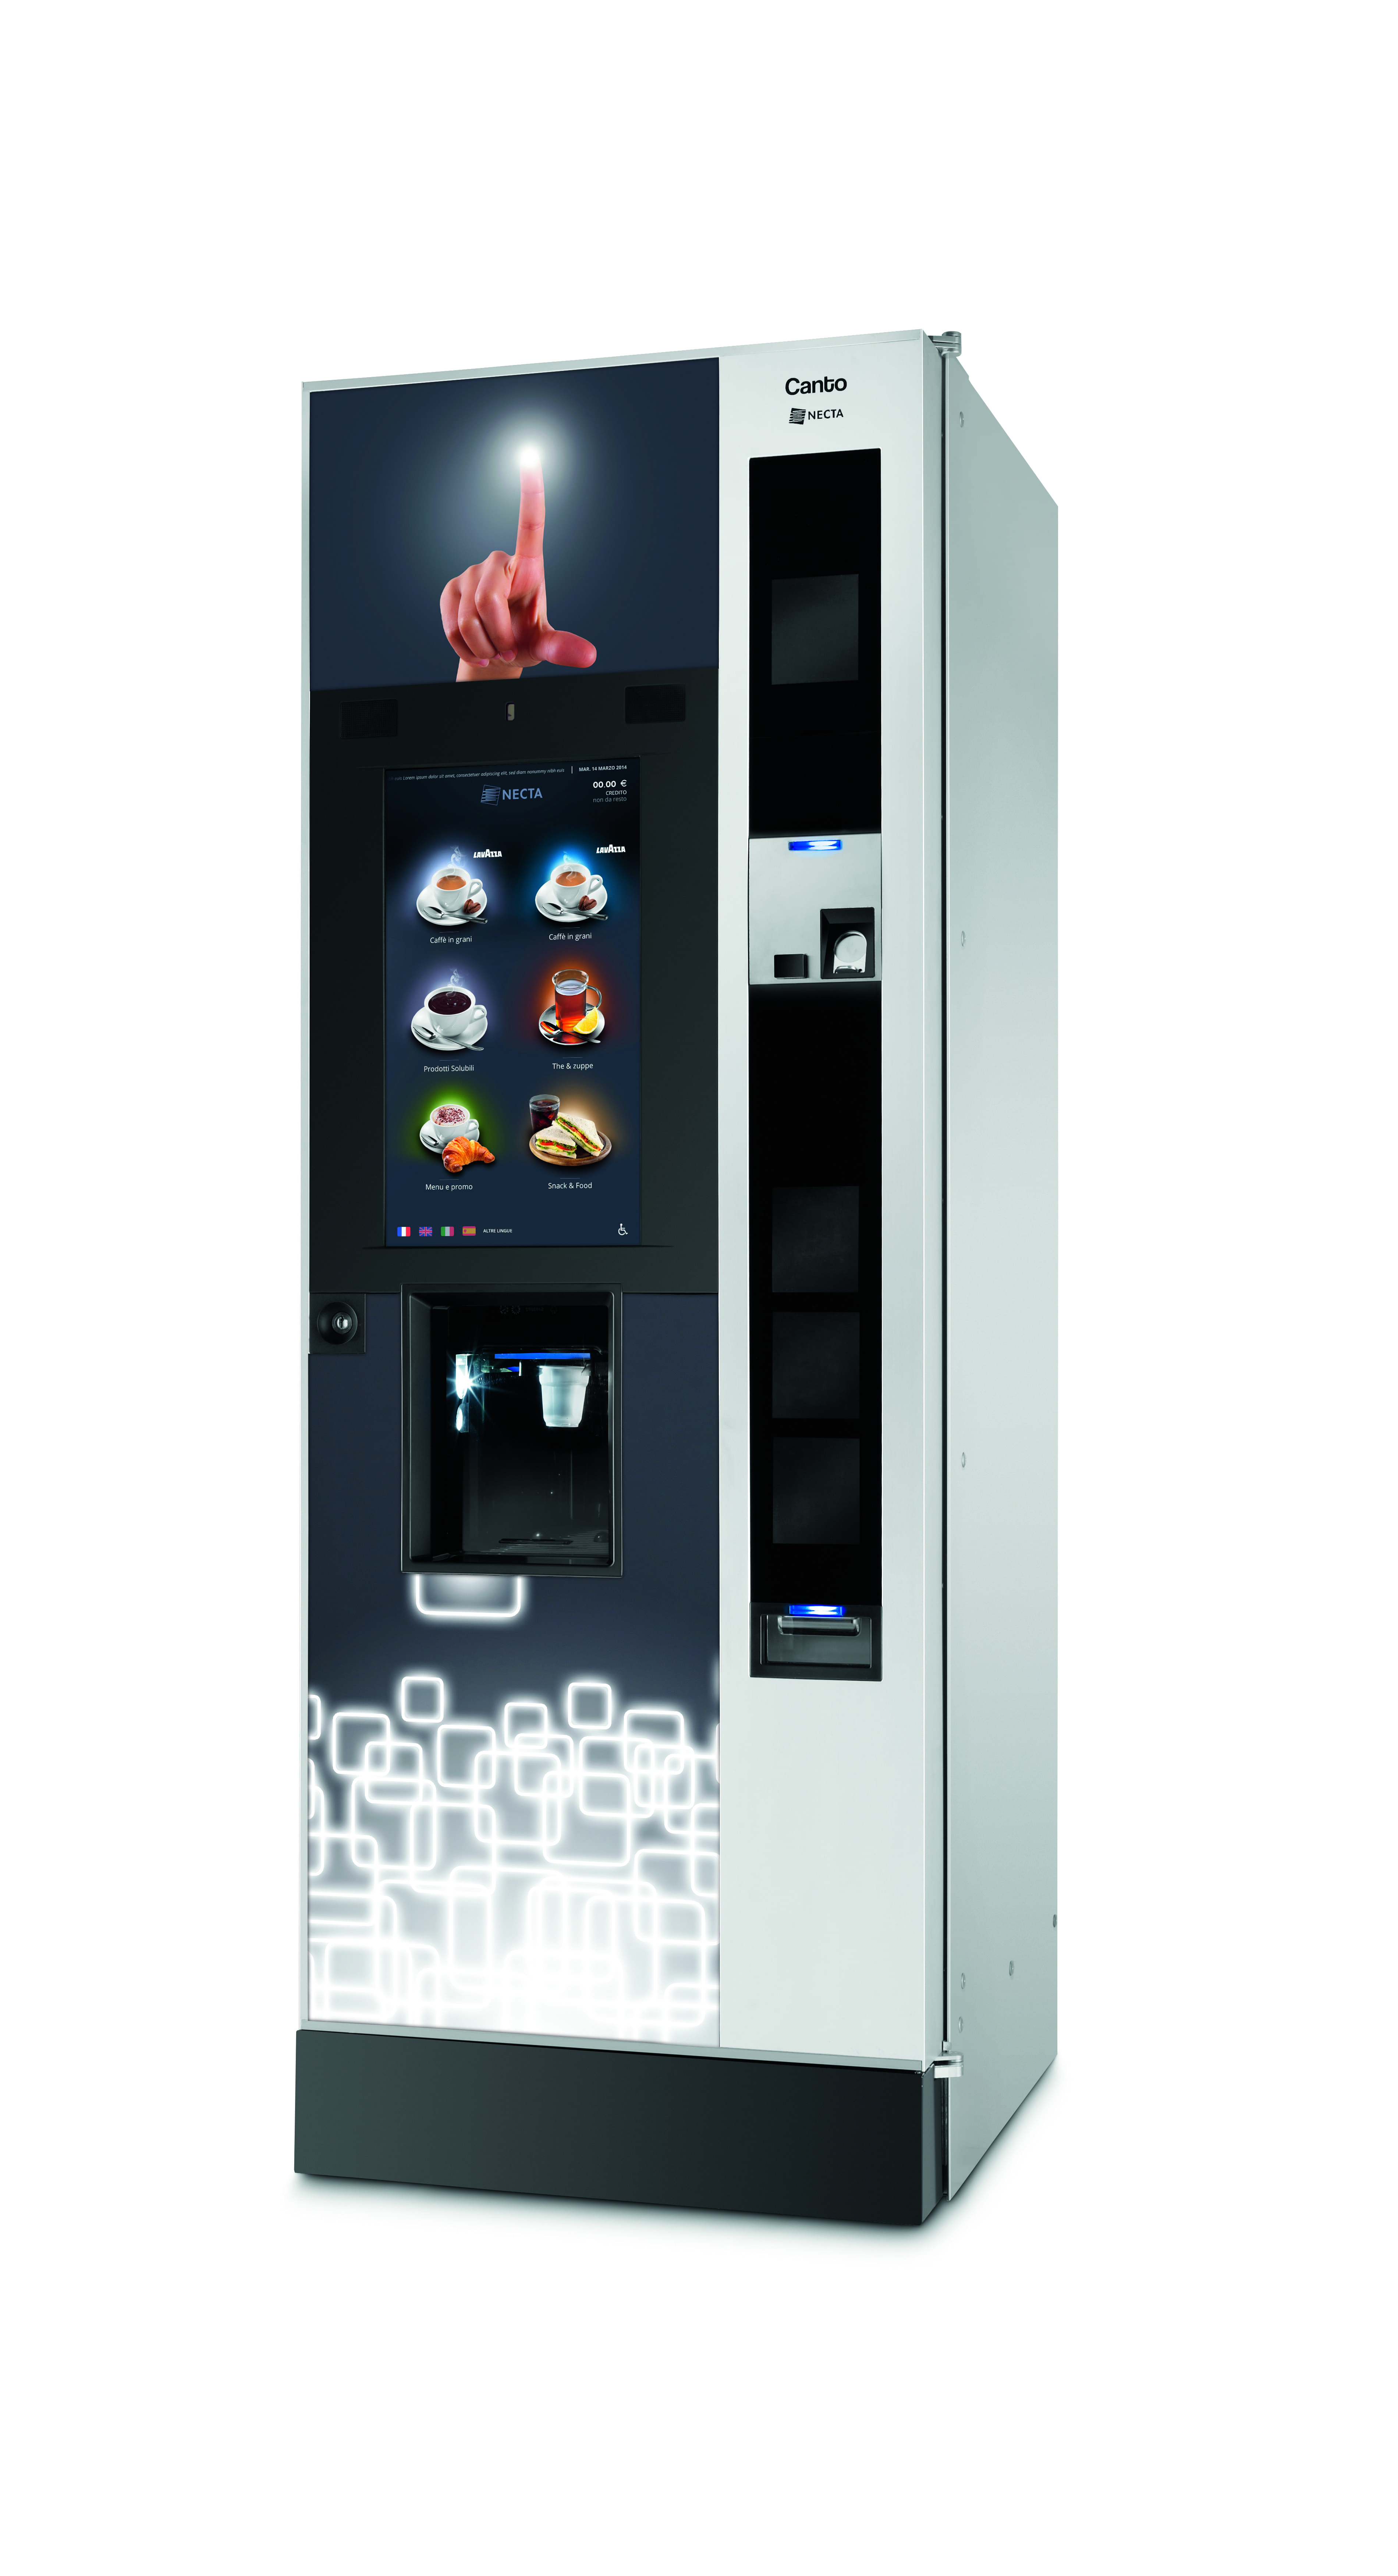 canto touch vending machine. Black Bedroom Furniture Sets. Home Design Ideas